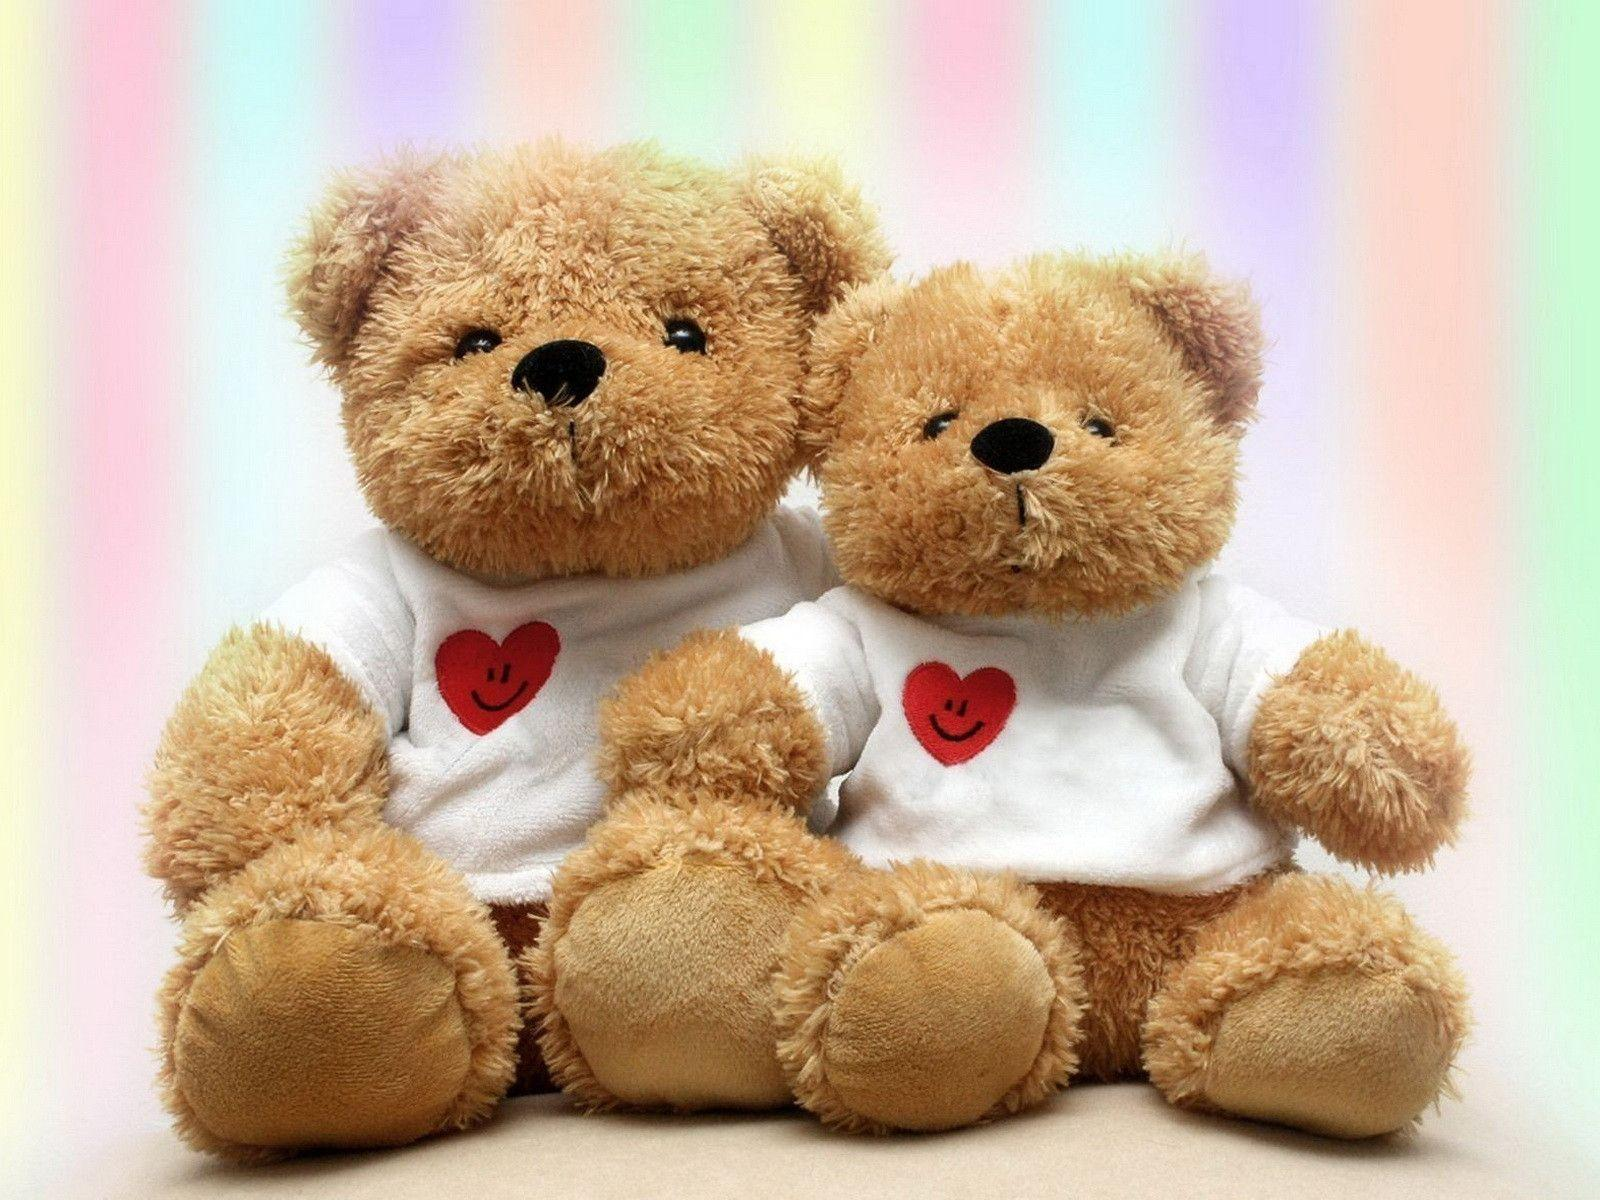 Love Wallpapers Teddy : Teddy Bear Love Wallpapers - Wallpaper cave